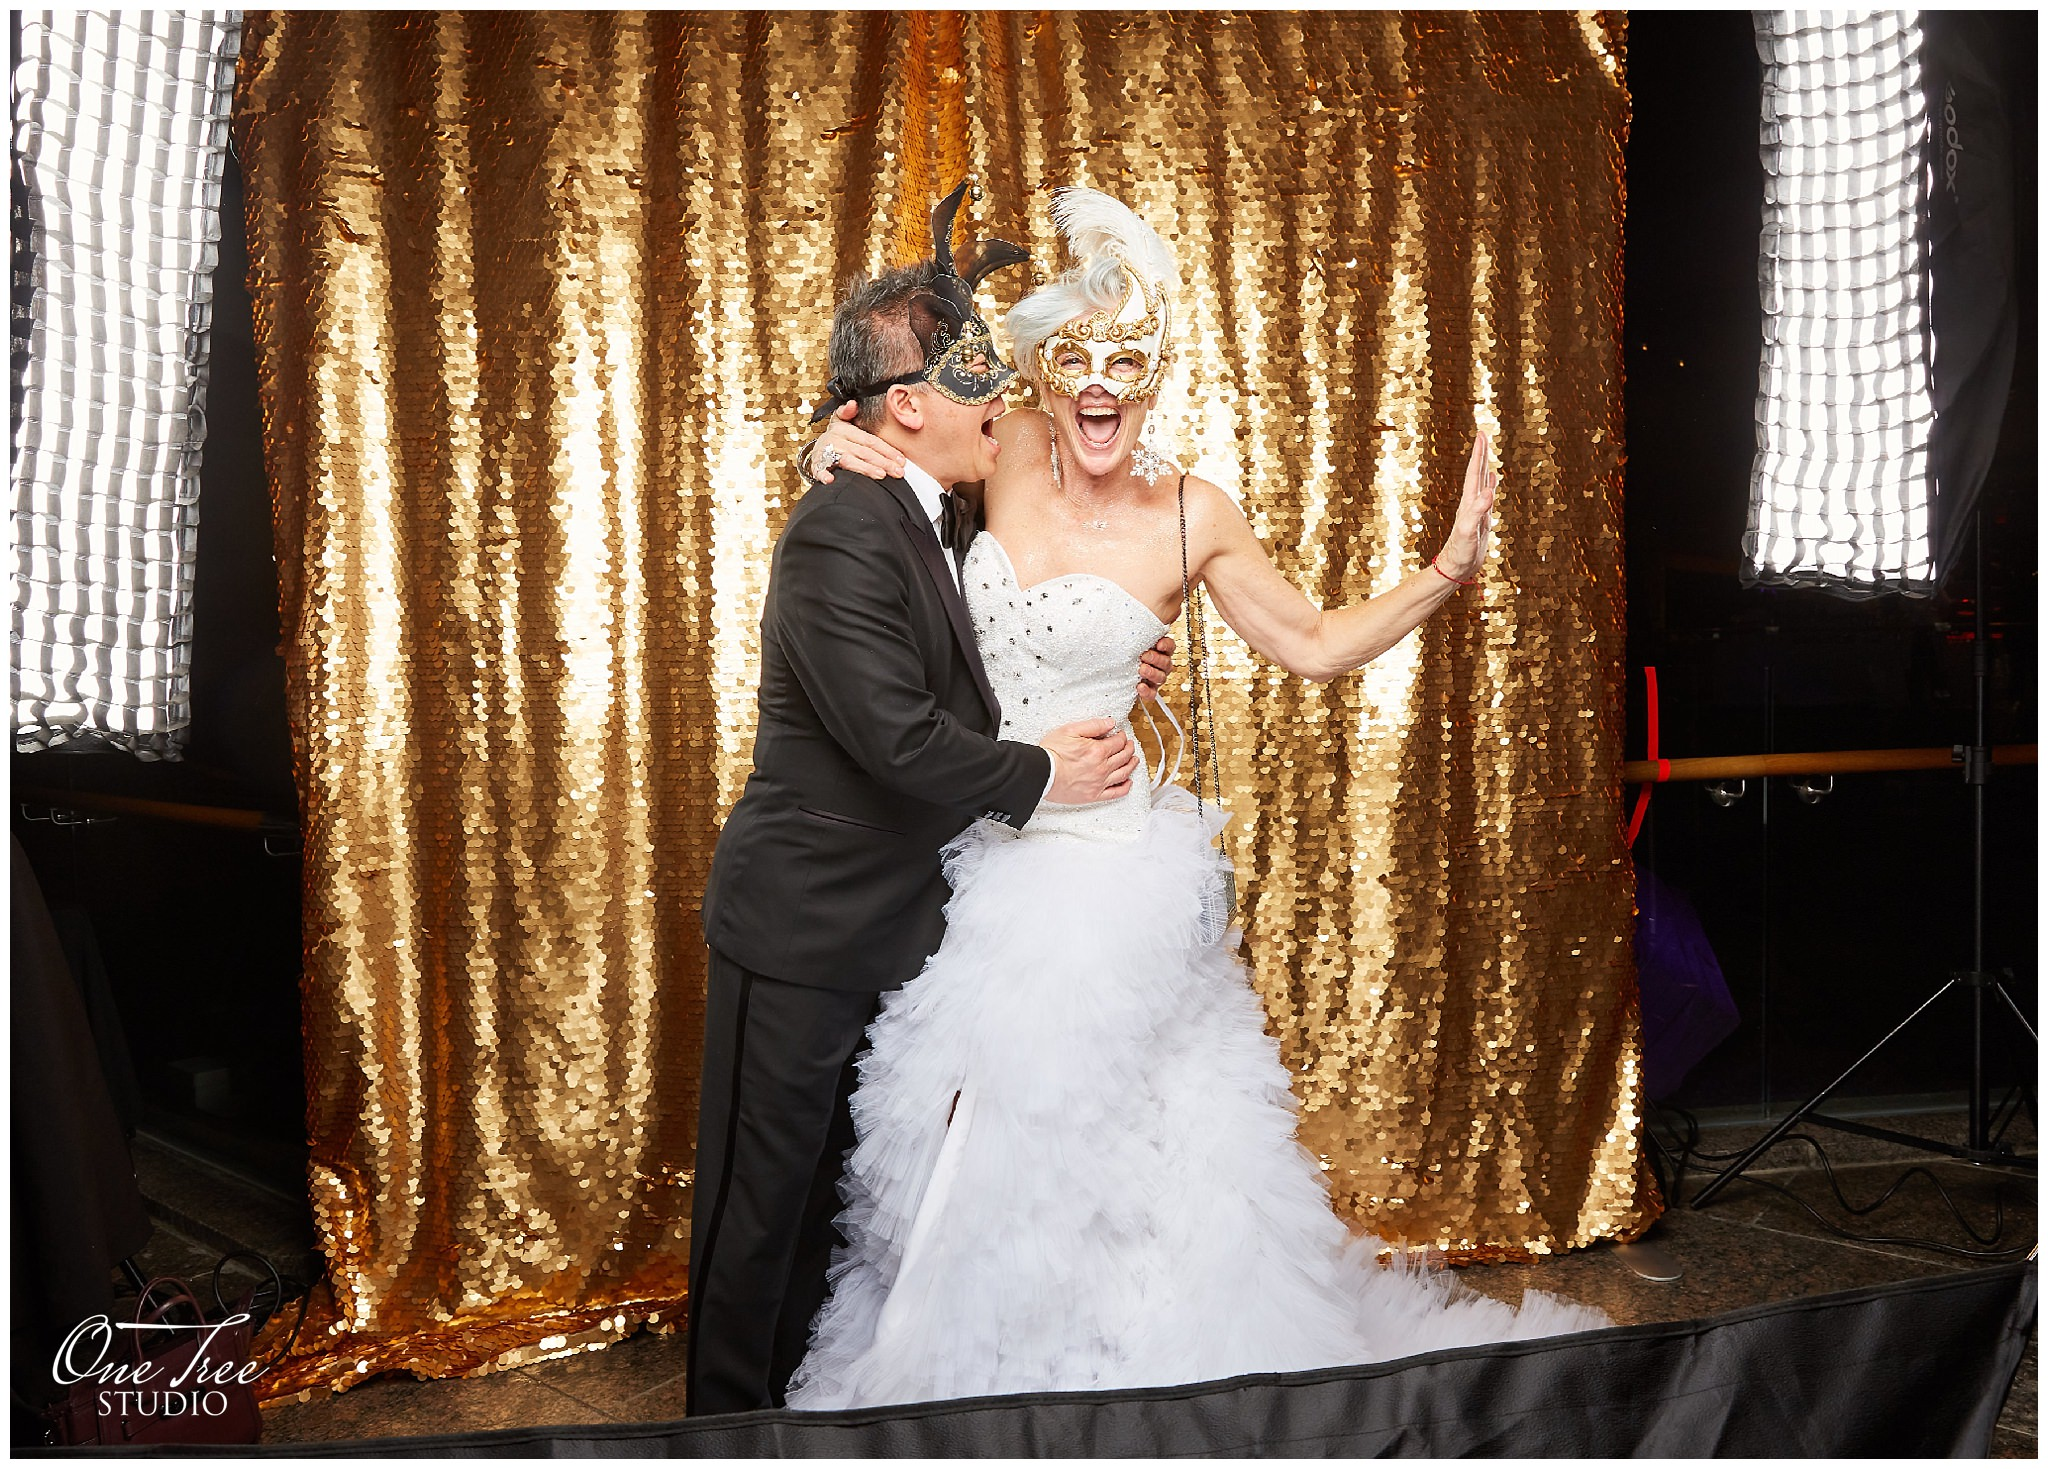 Luxury Photo Booth at Masquerade Ball